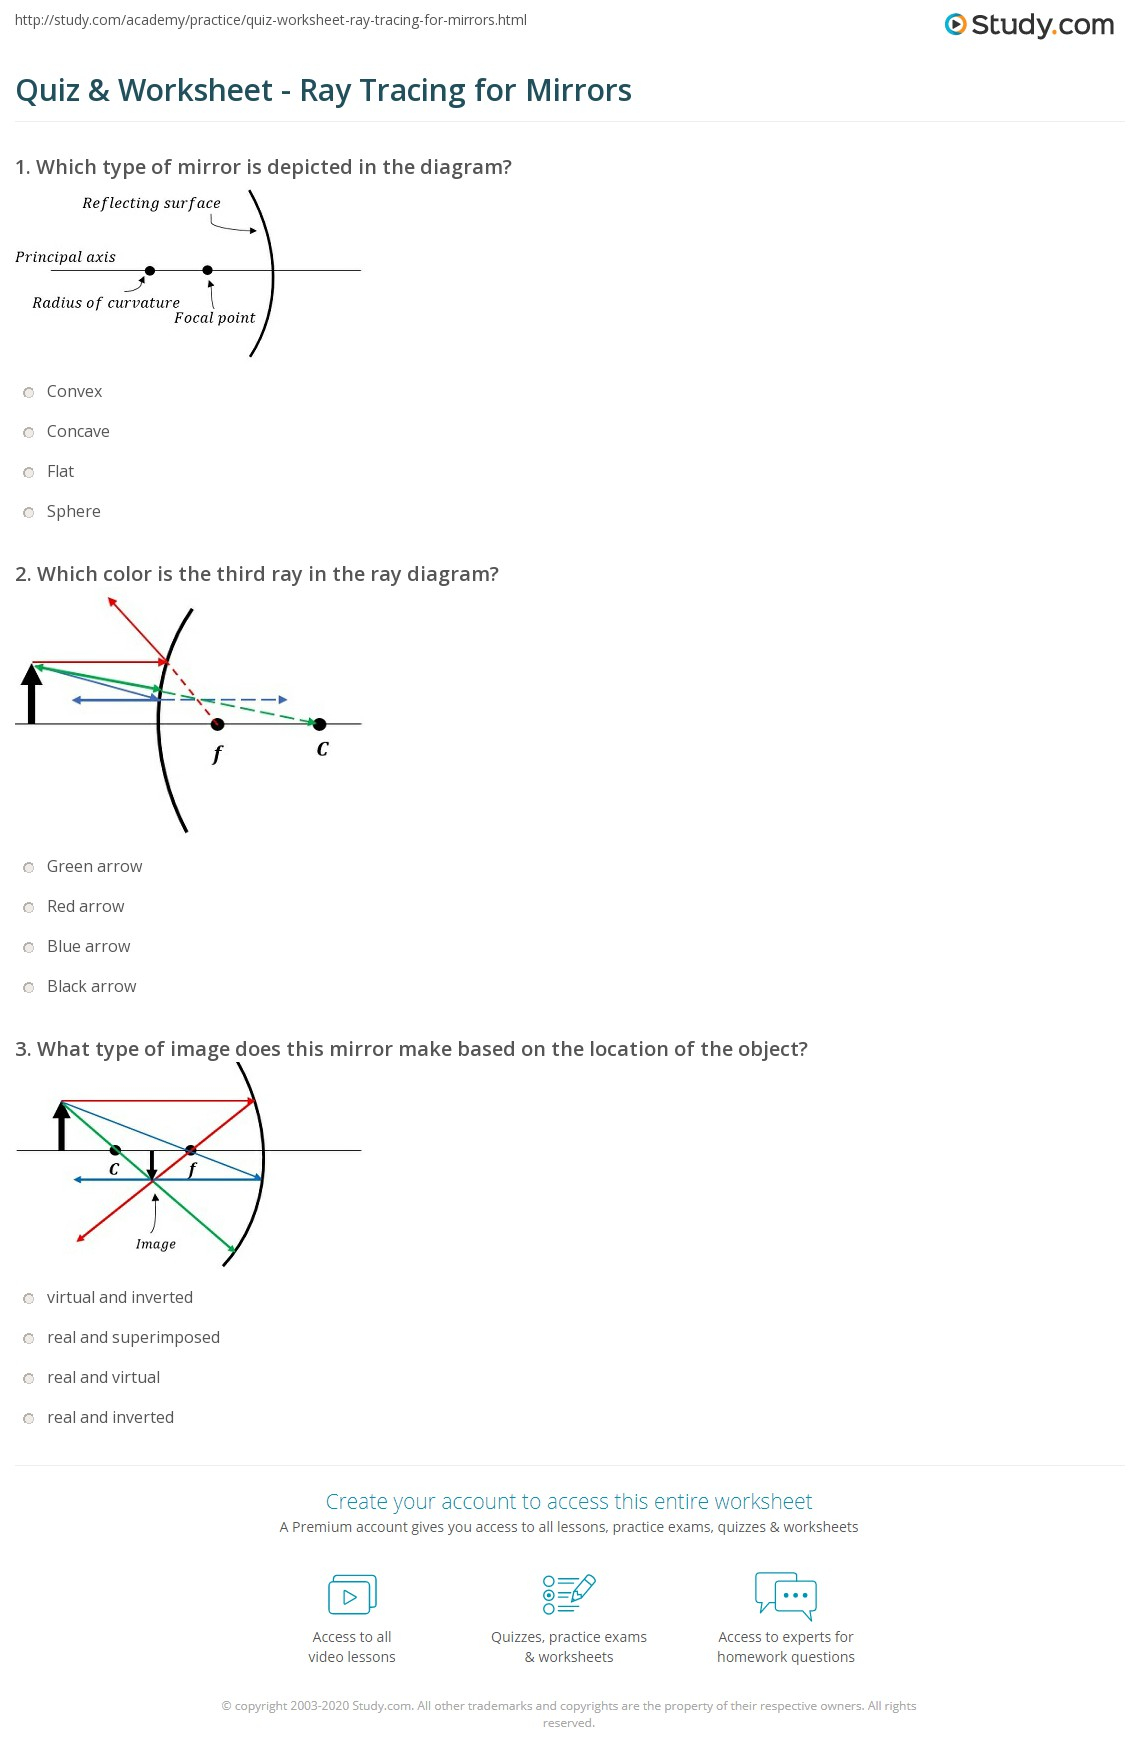 Quiz & Worksheet - Ray Tracing For Mirrors | Study